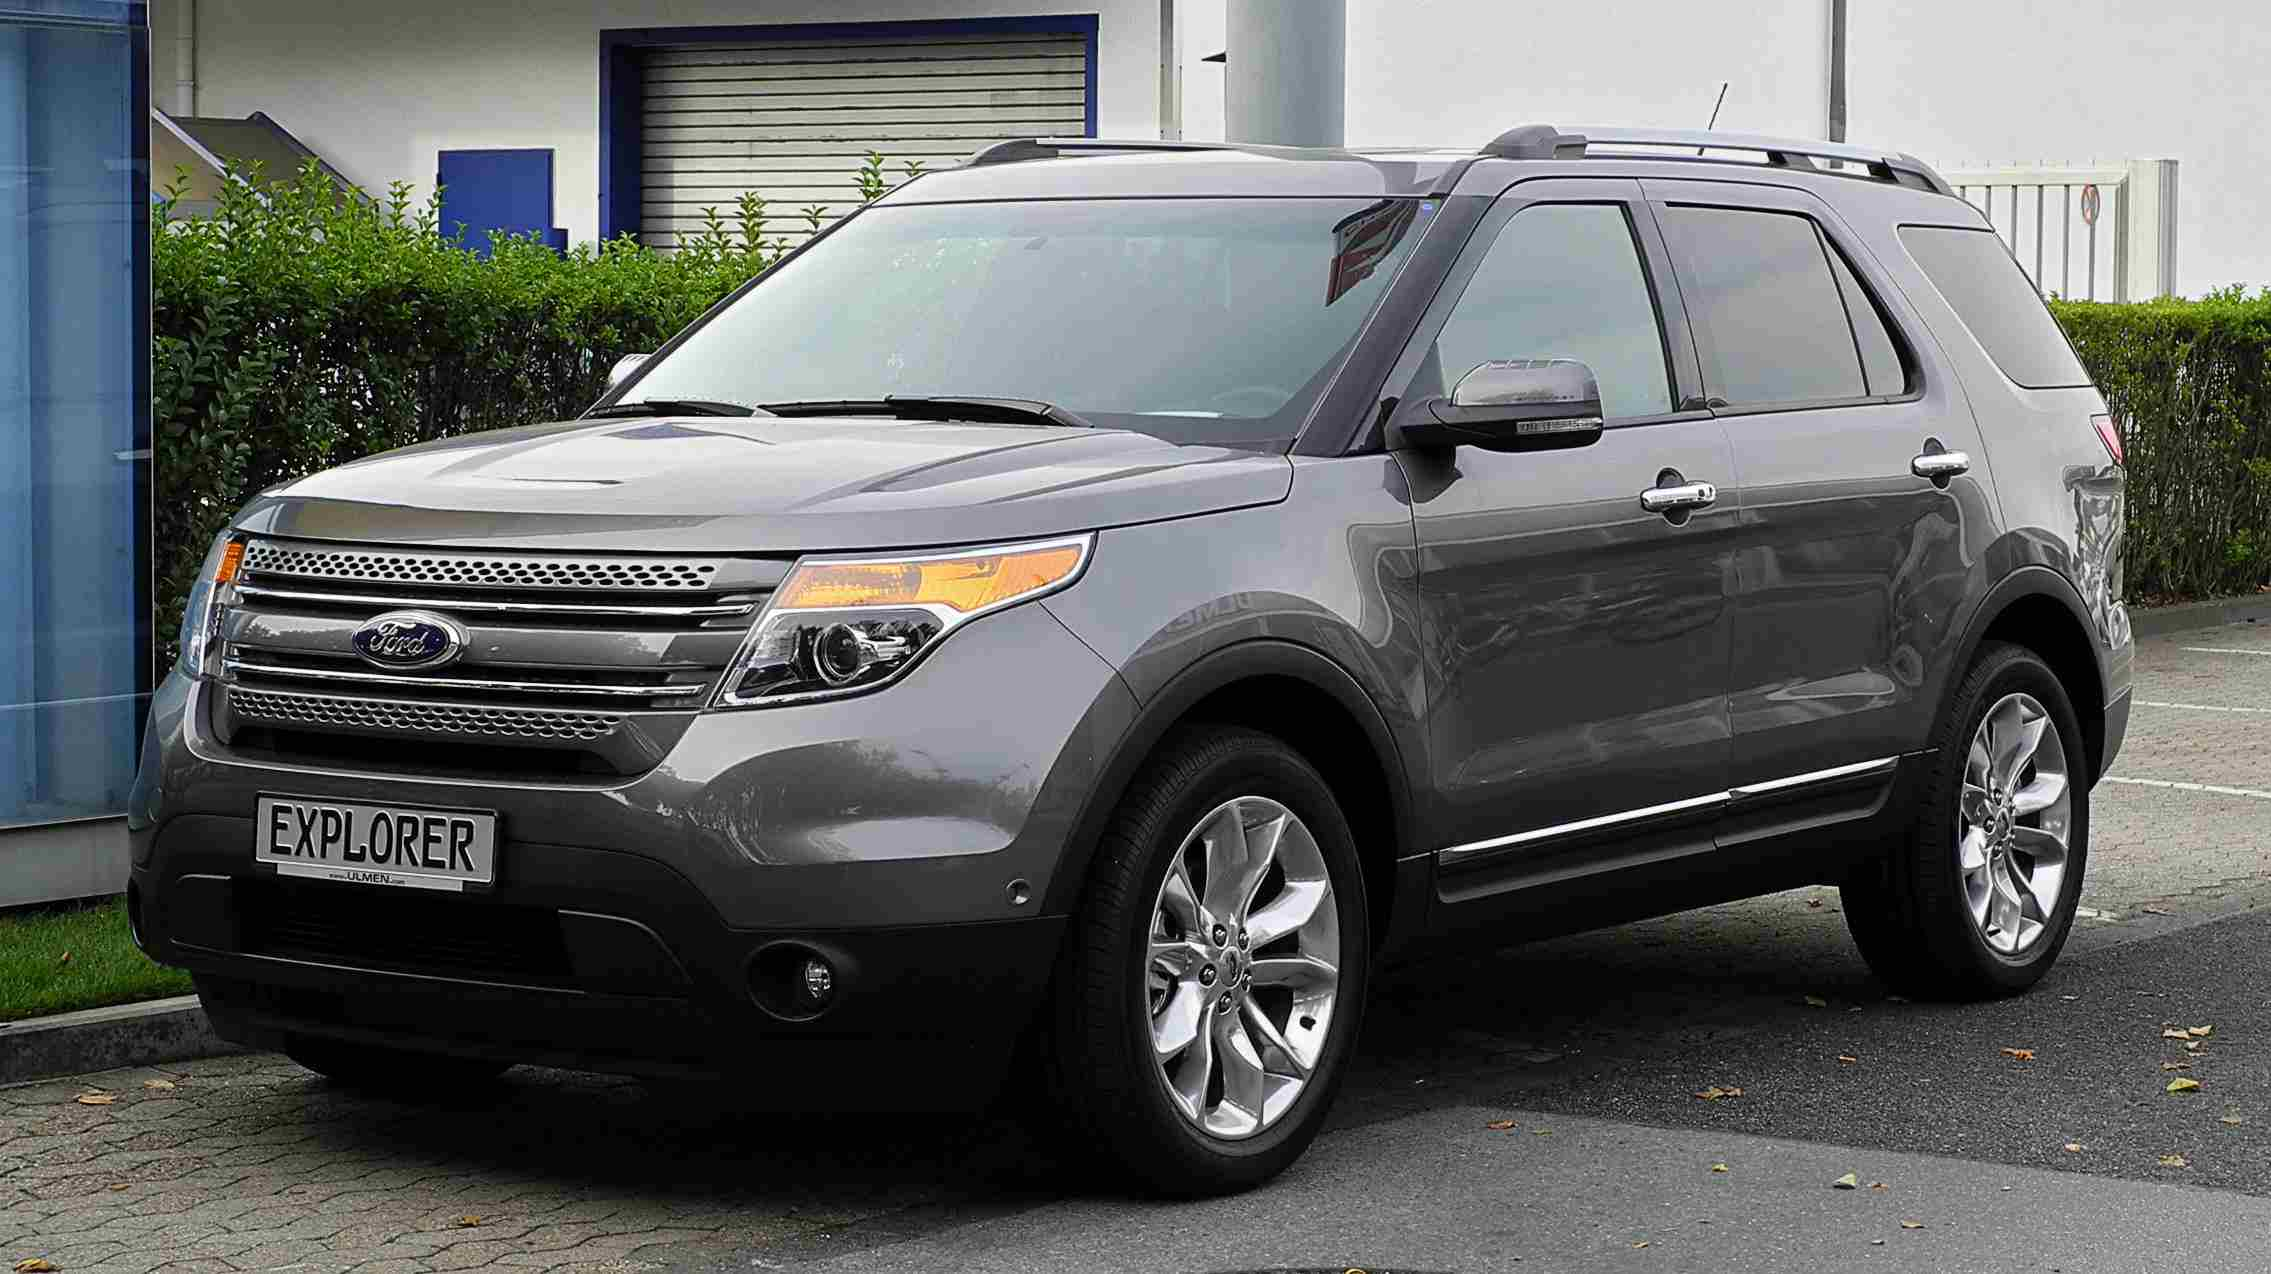 Find A Free Online Ford Explorer Electrical Wiring Diagram